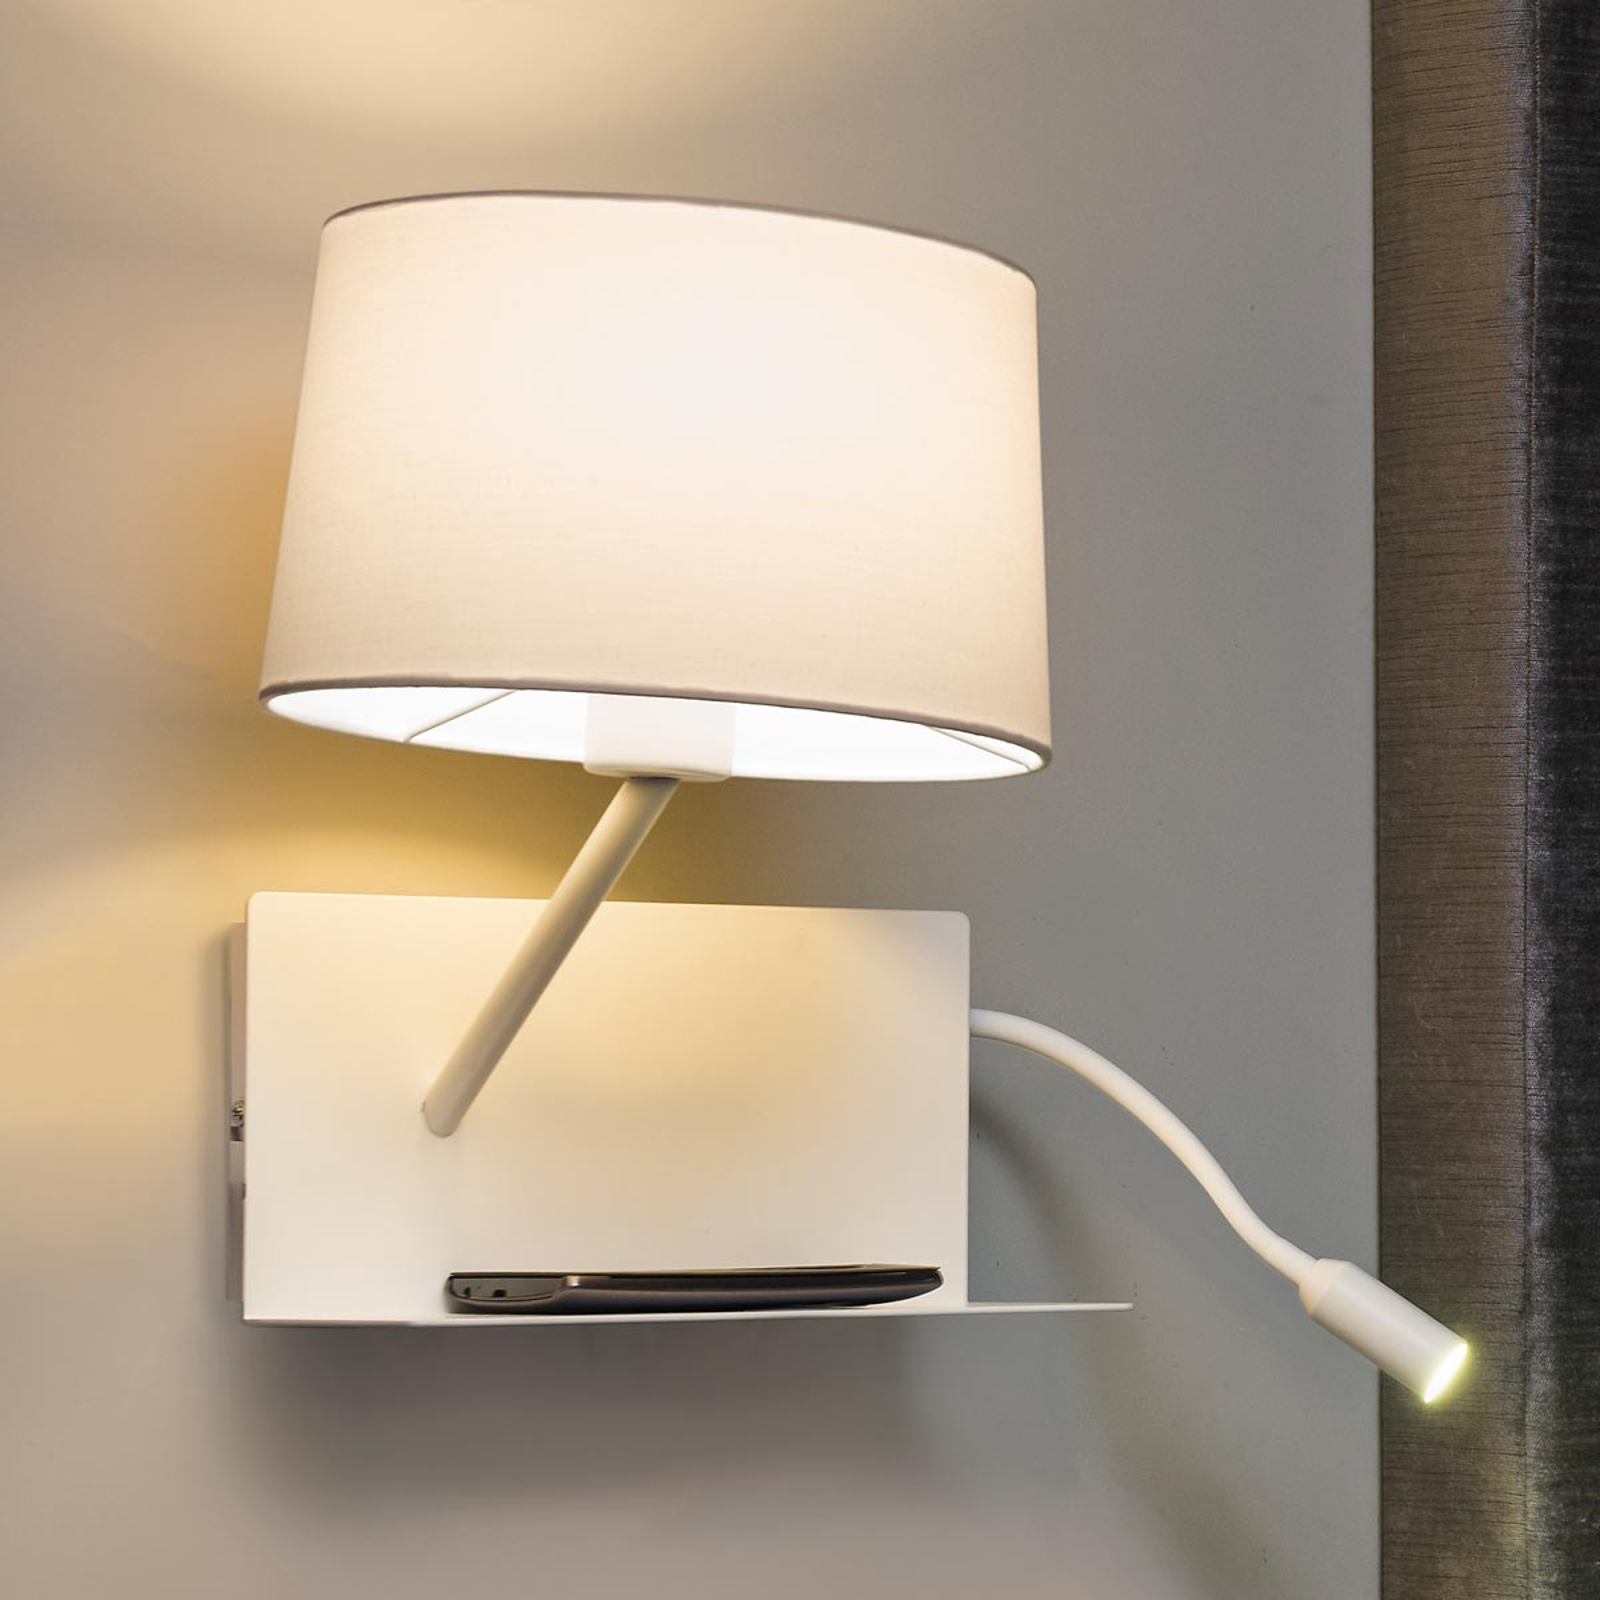 Functional Handy wall lamp with an LED reading arm_3507196_1